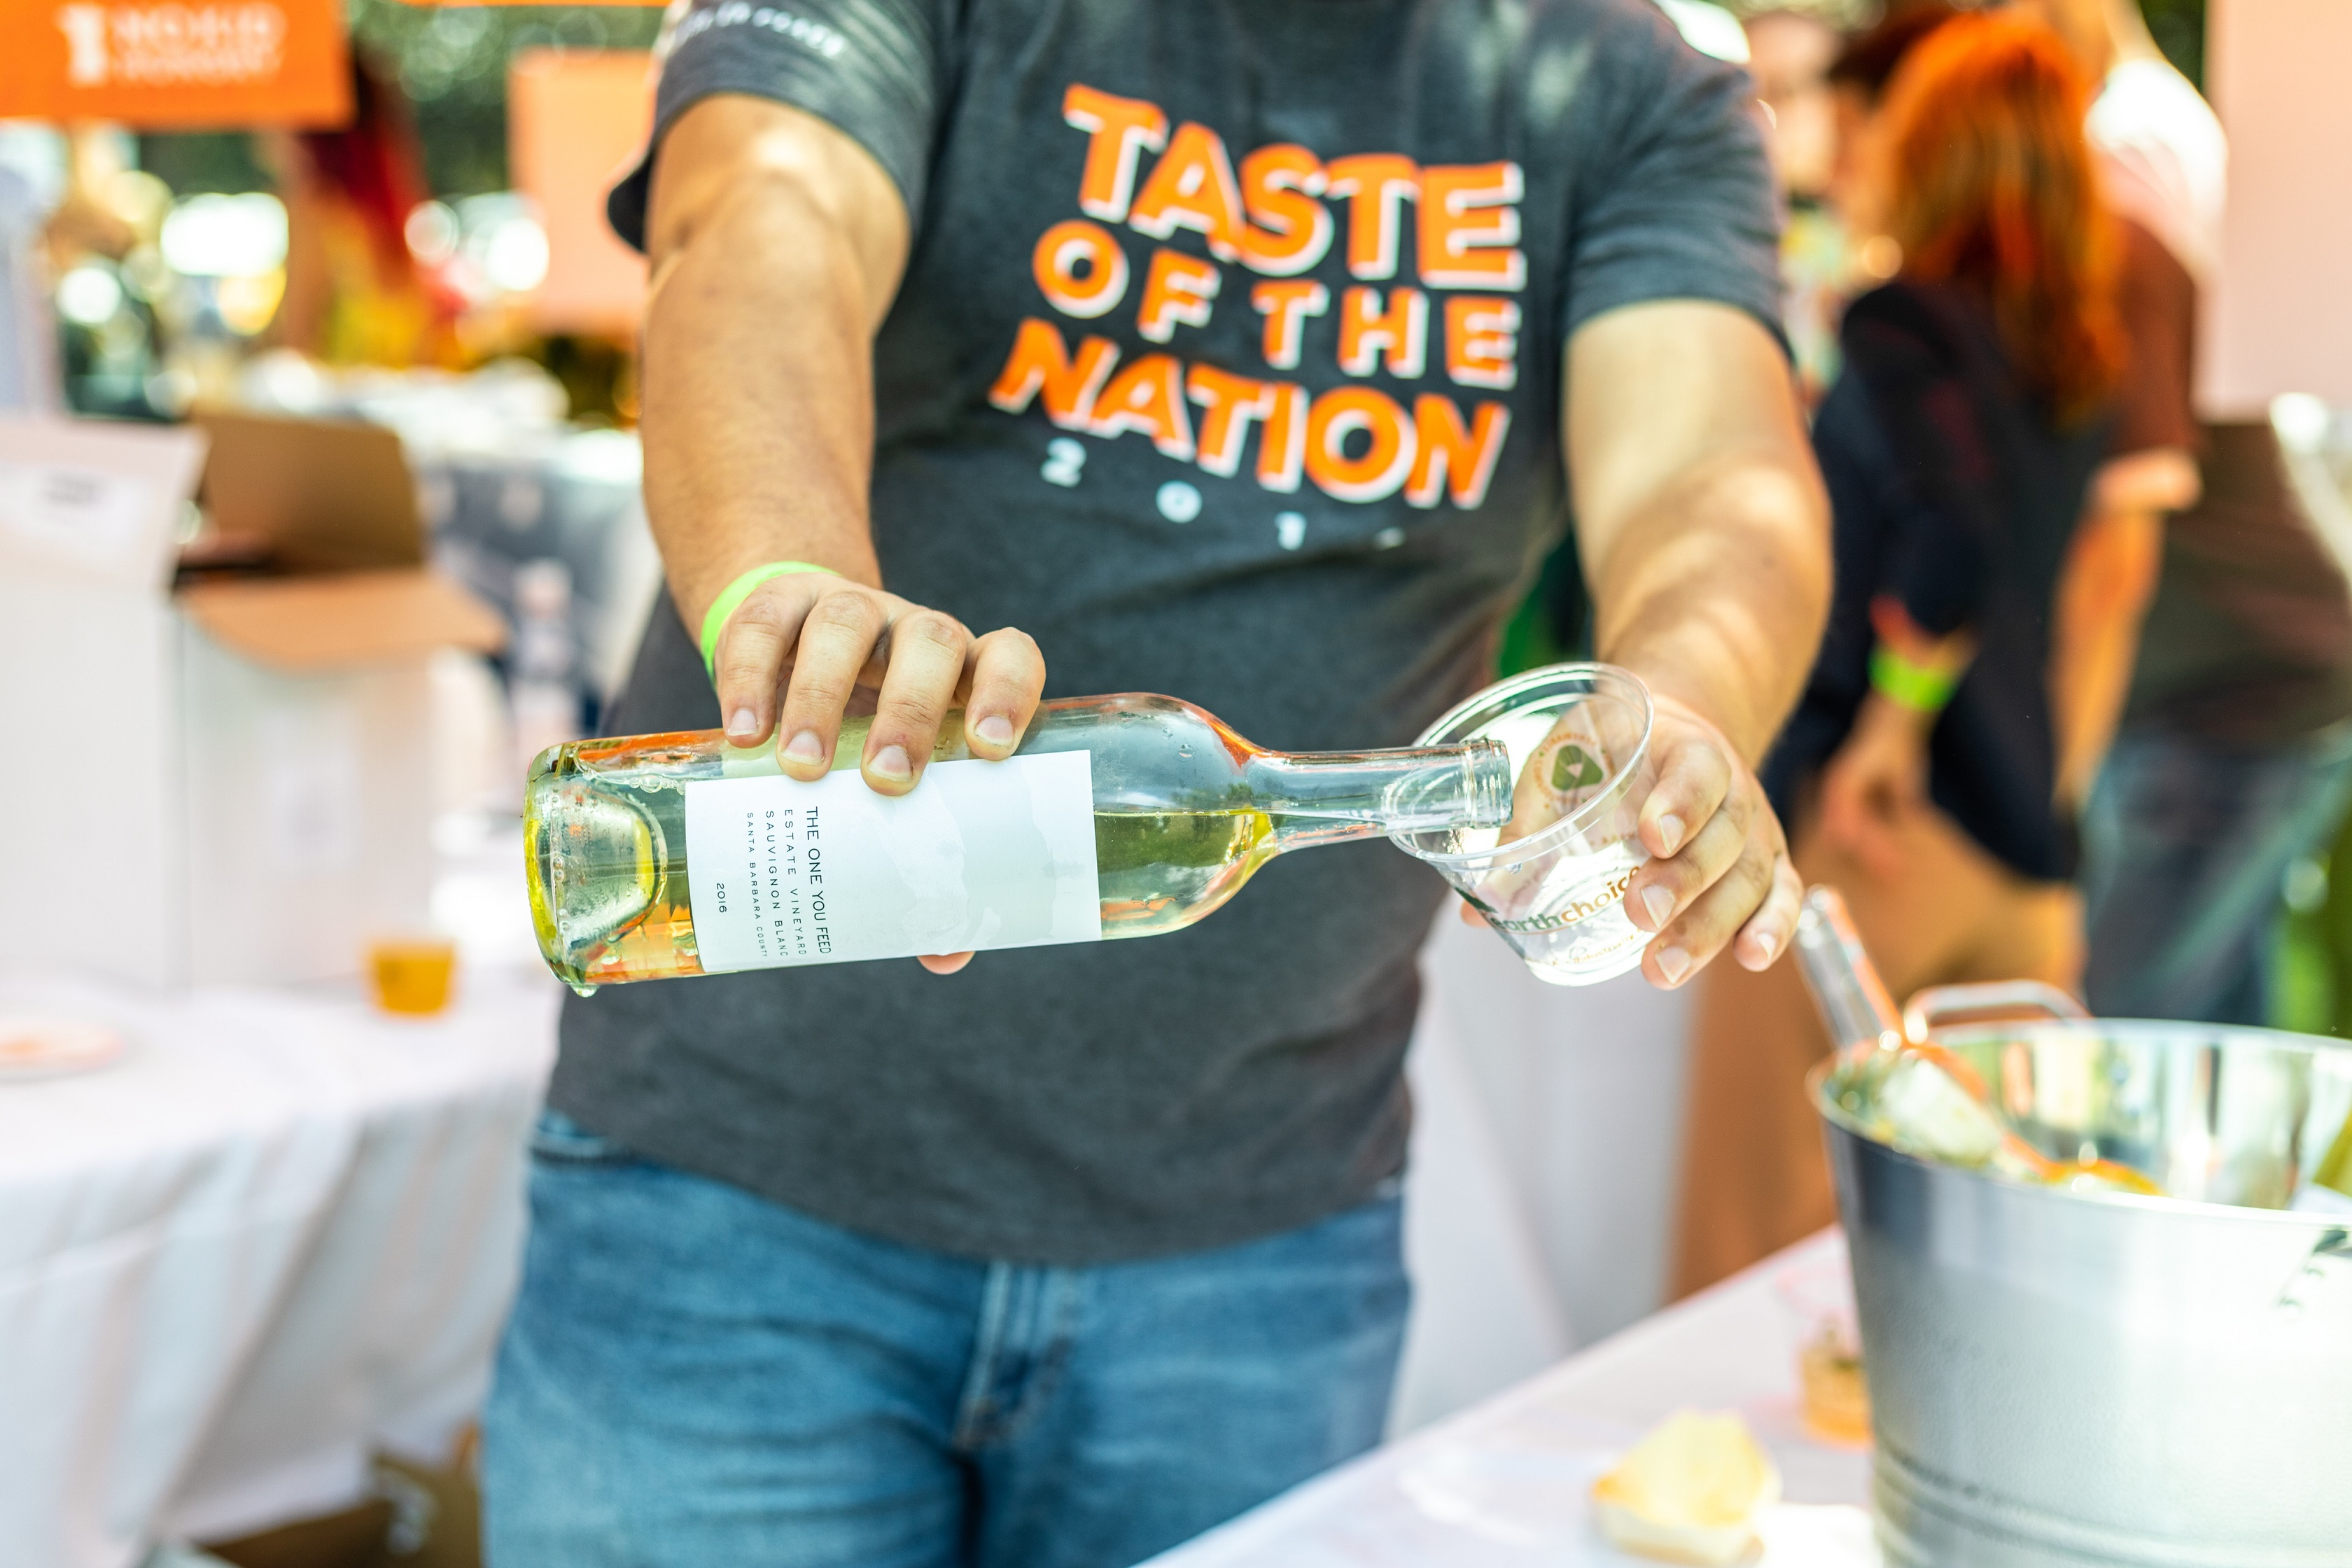 St. Louis' Taste of the Nation